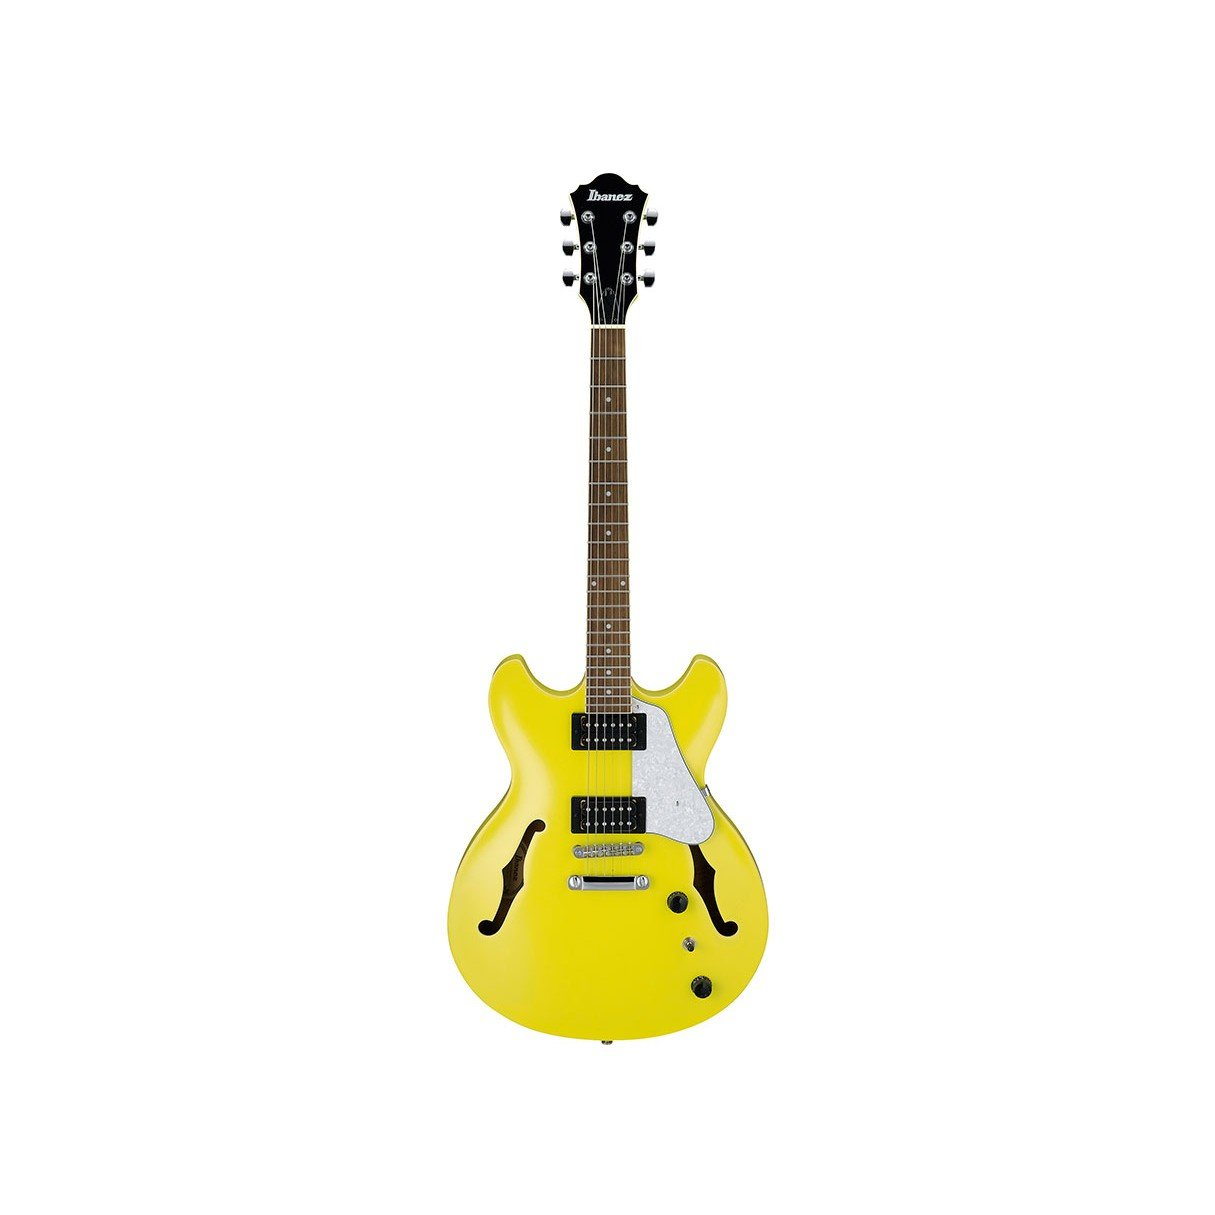 Ibanez Artcore Vibrante AS63 Semi-Hollow - Lemon Yellow